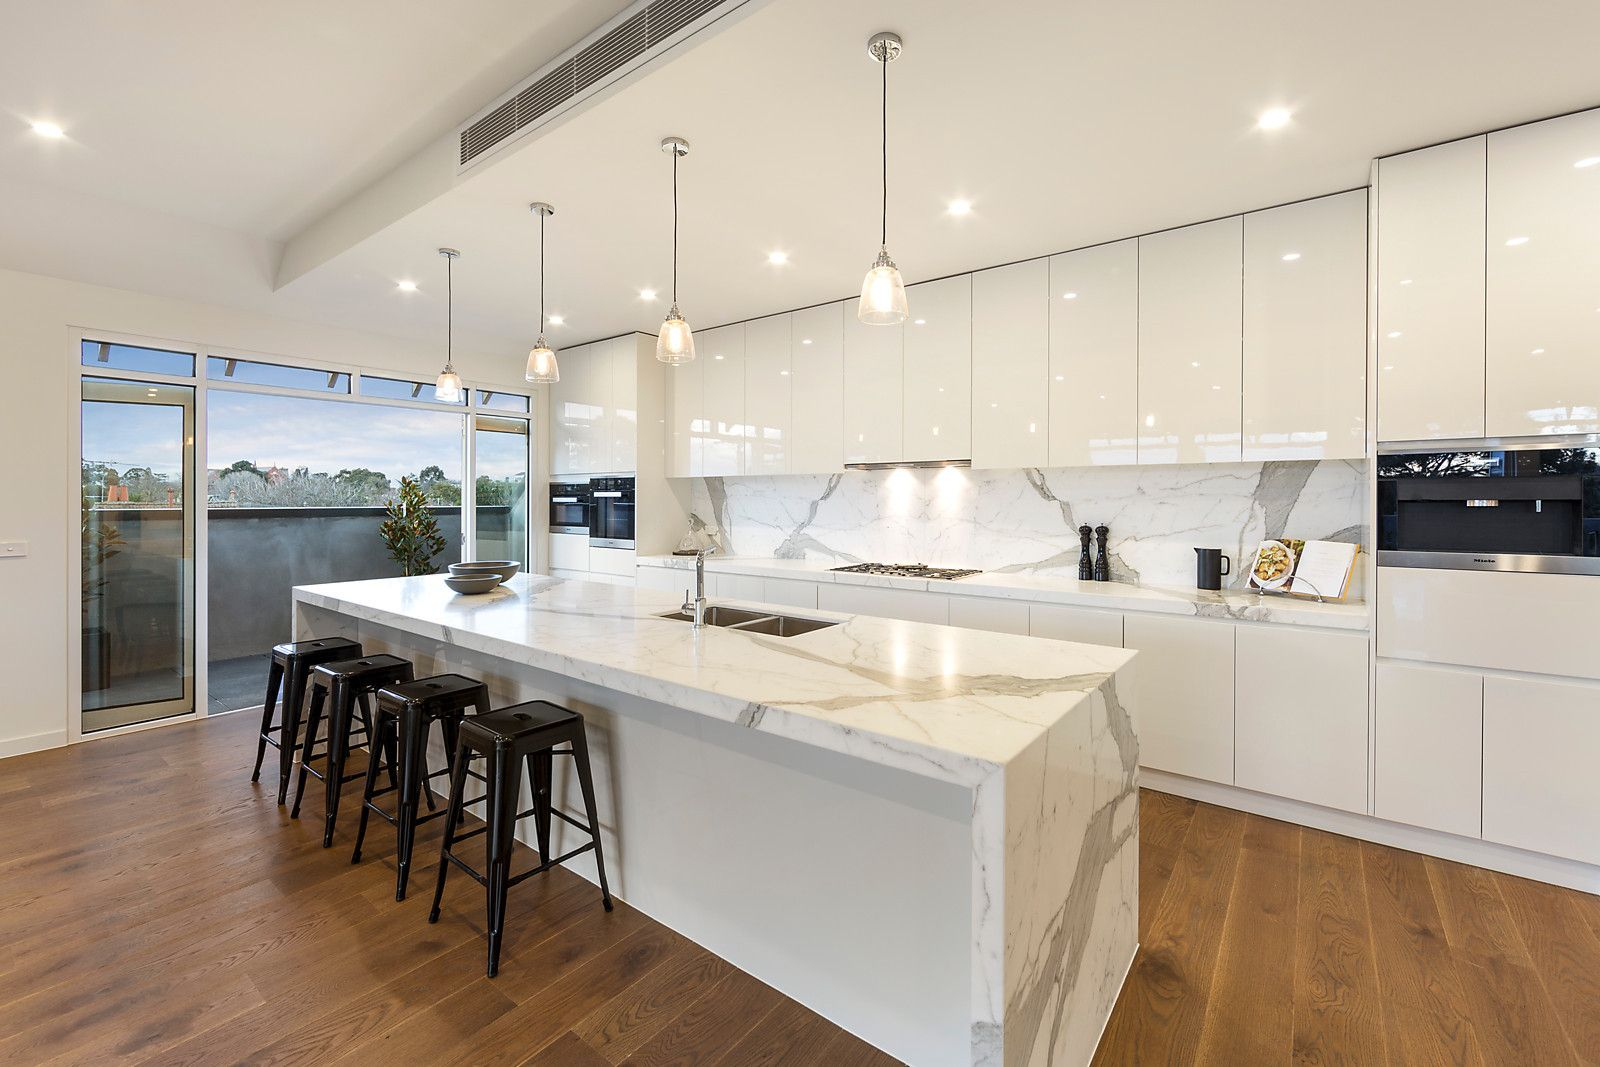 Modern White Marble Kitchen With Gloss Cabinetry And Pendant Intended For Most Popular Upland Marble Kitchen Islands (Image 18 of 25)